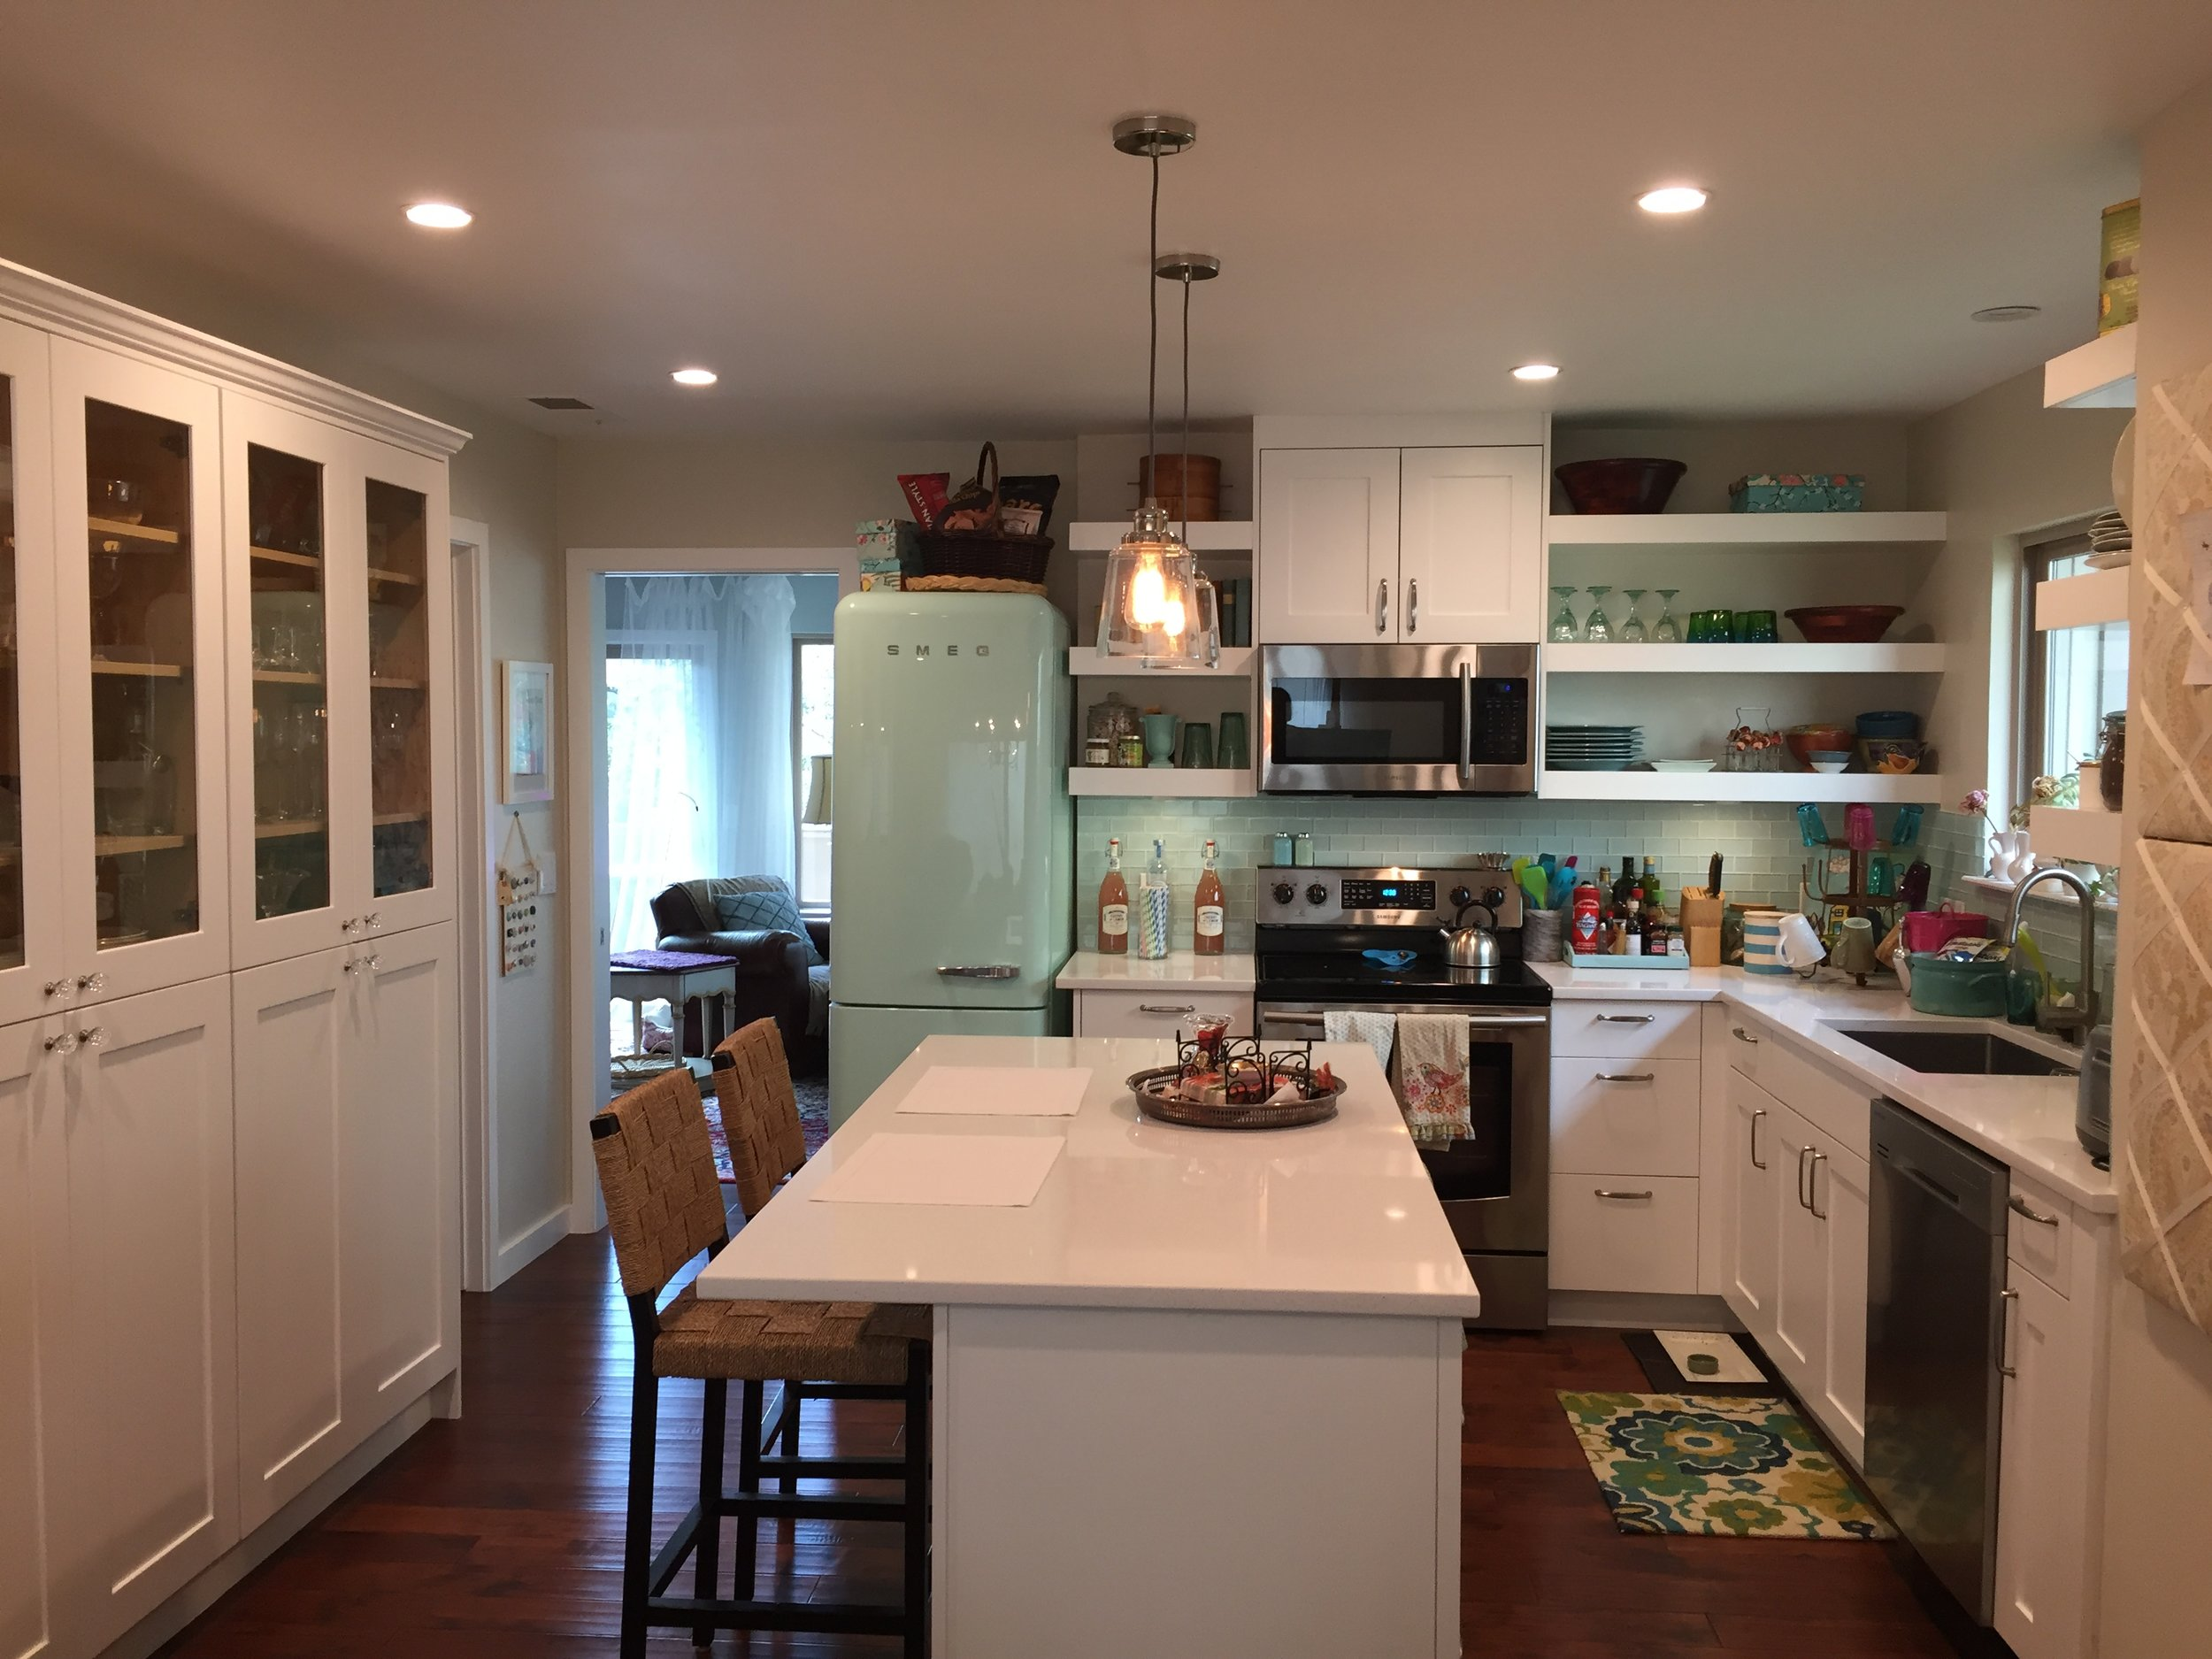 Modern Country with a SMEG cool green refrigerator....wall was removed to open up the kitchen to the dining room.